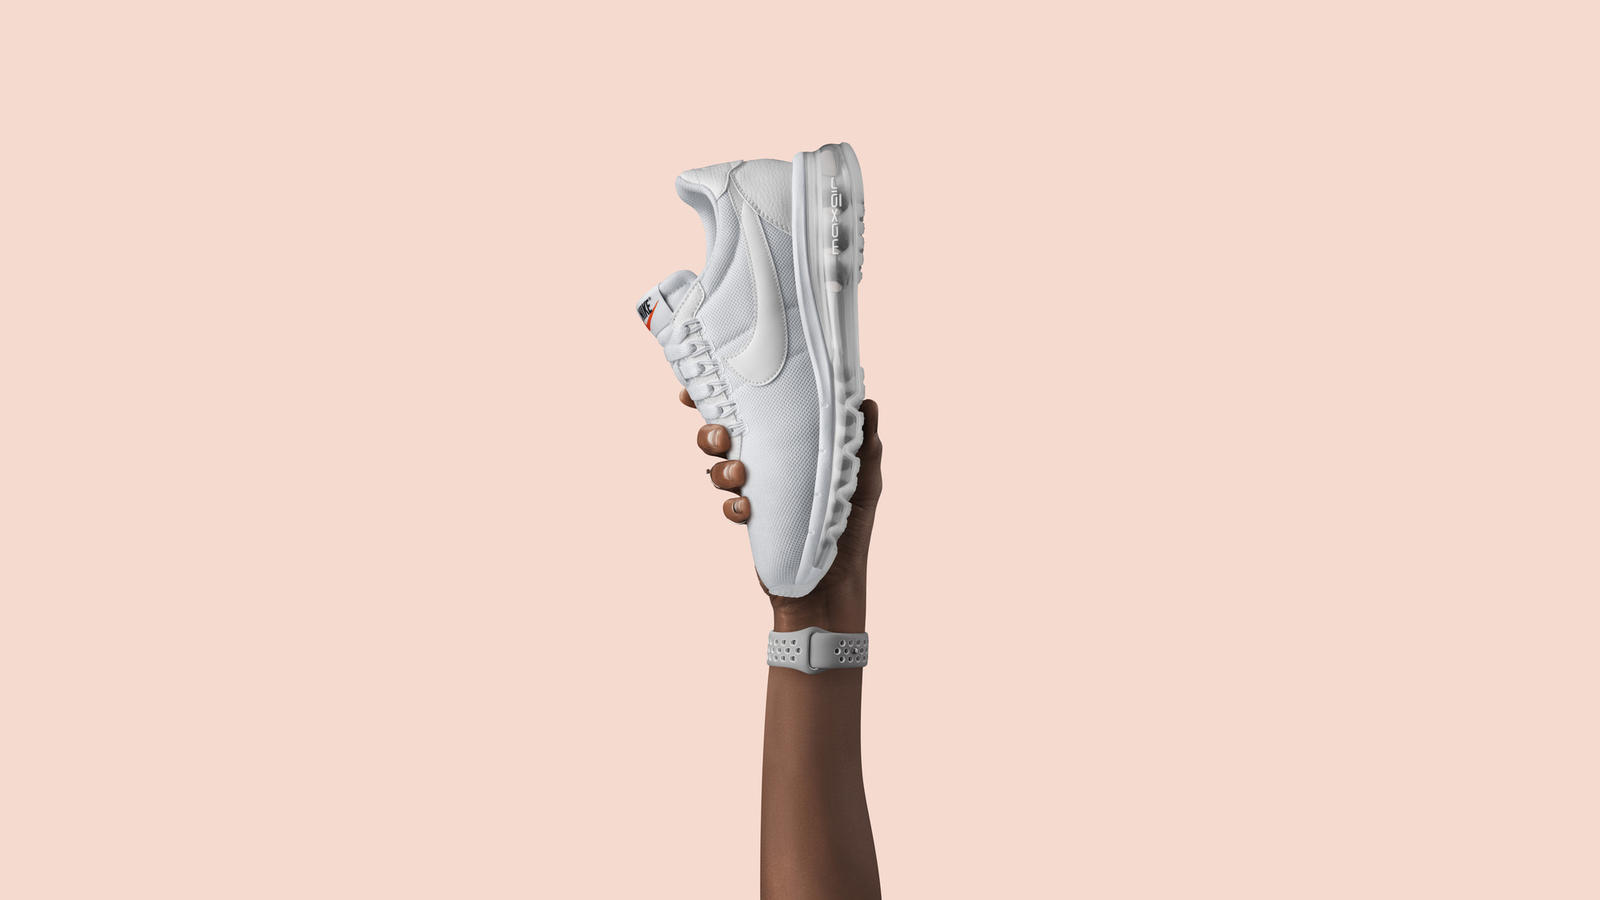 Created for Air Max Day 2016 by legendary streetwear designer Hiroshi Fujiwara, the LD-Zero mixes a clean upper inspired by the 70s-era Nike LD1000 and the Boston with the 360 Air Max unit that debuted in 2006 and was updated for the Air Max 2014. The result is an original design that merges classic style with modern comfort.